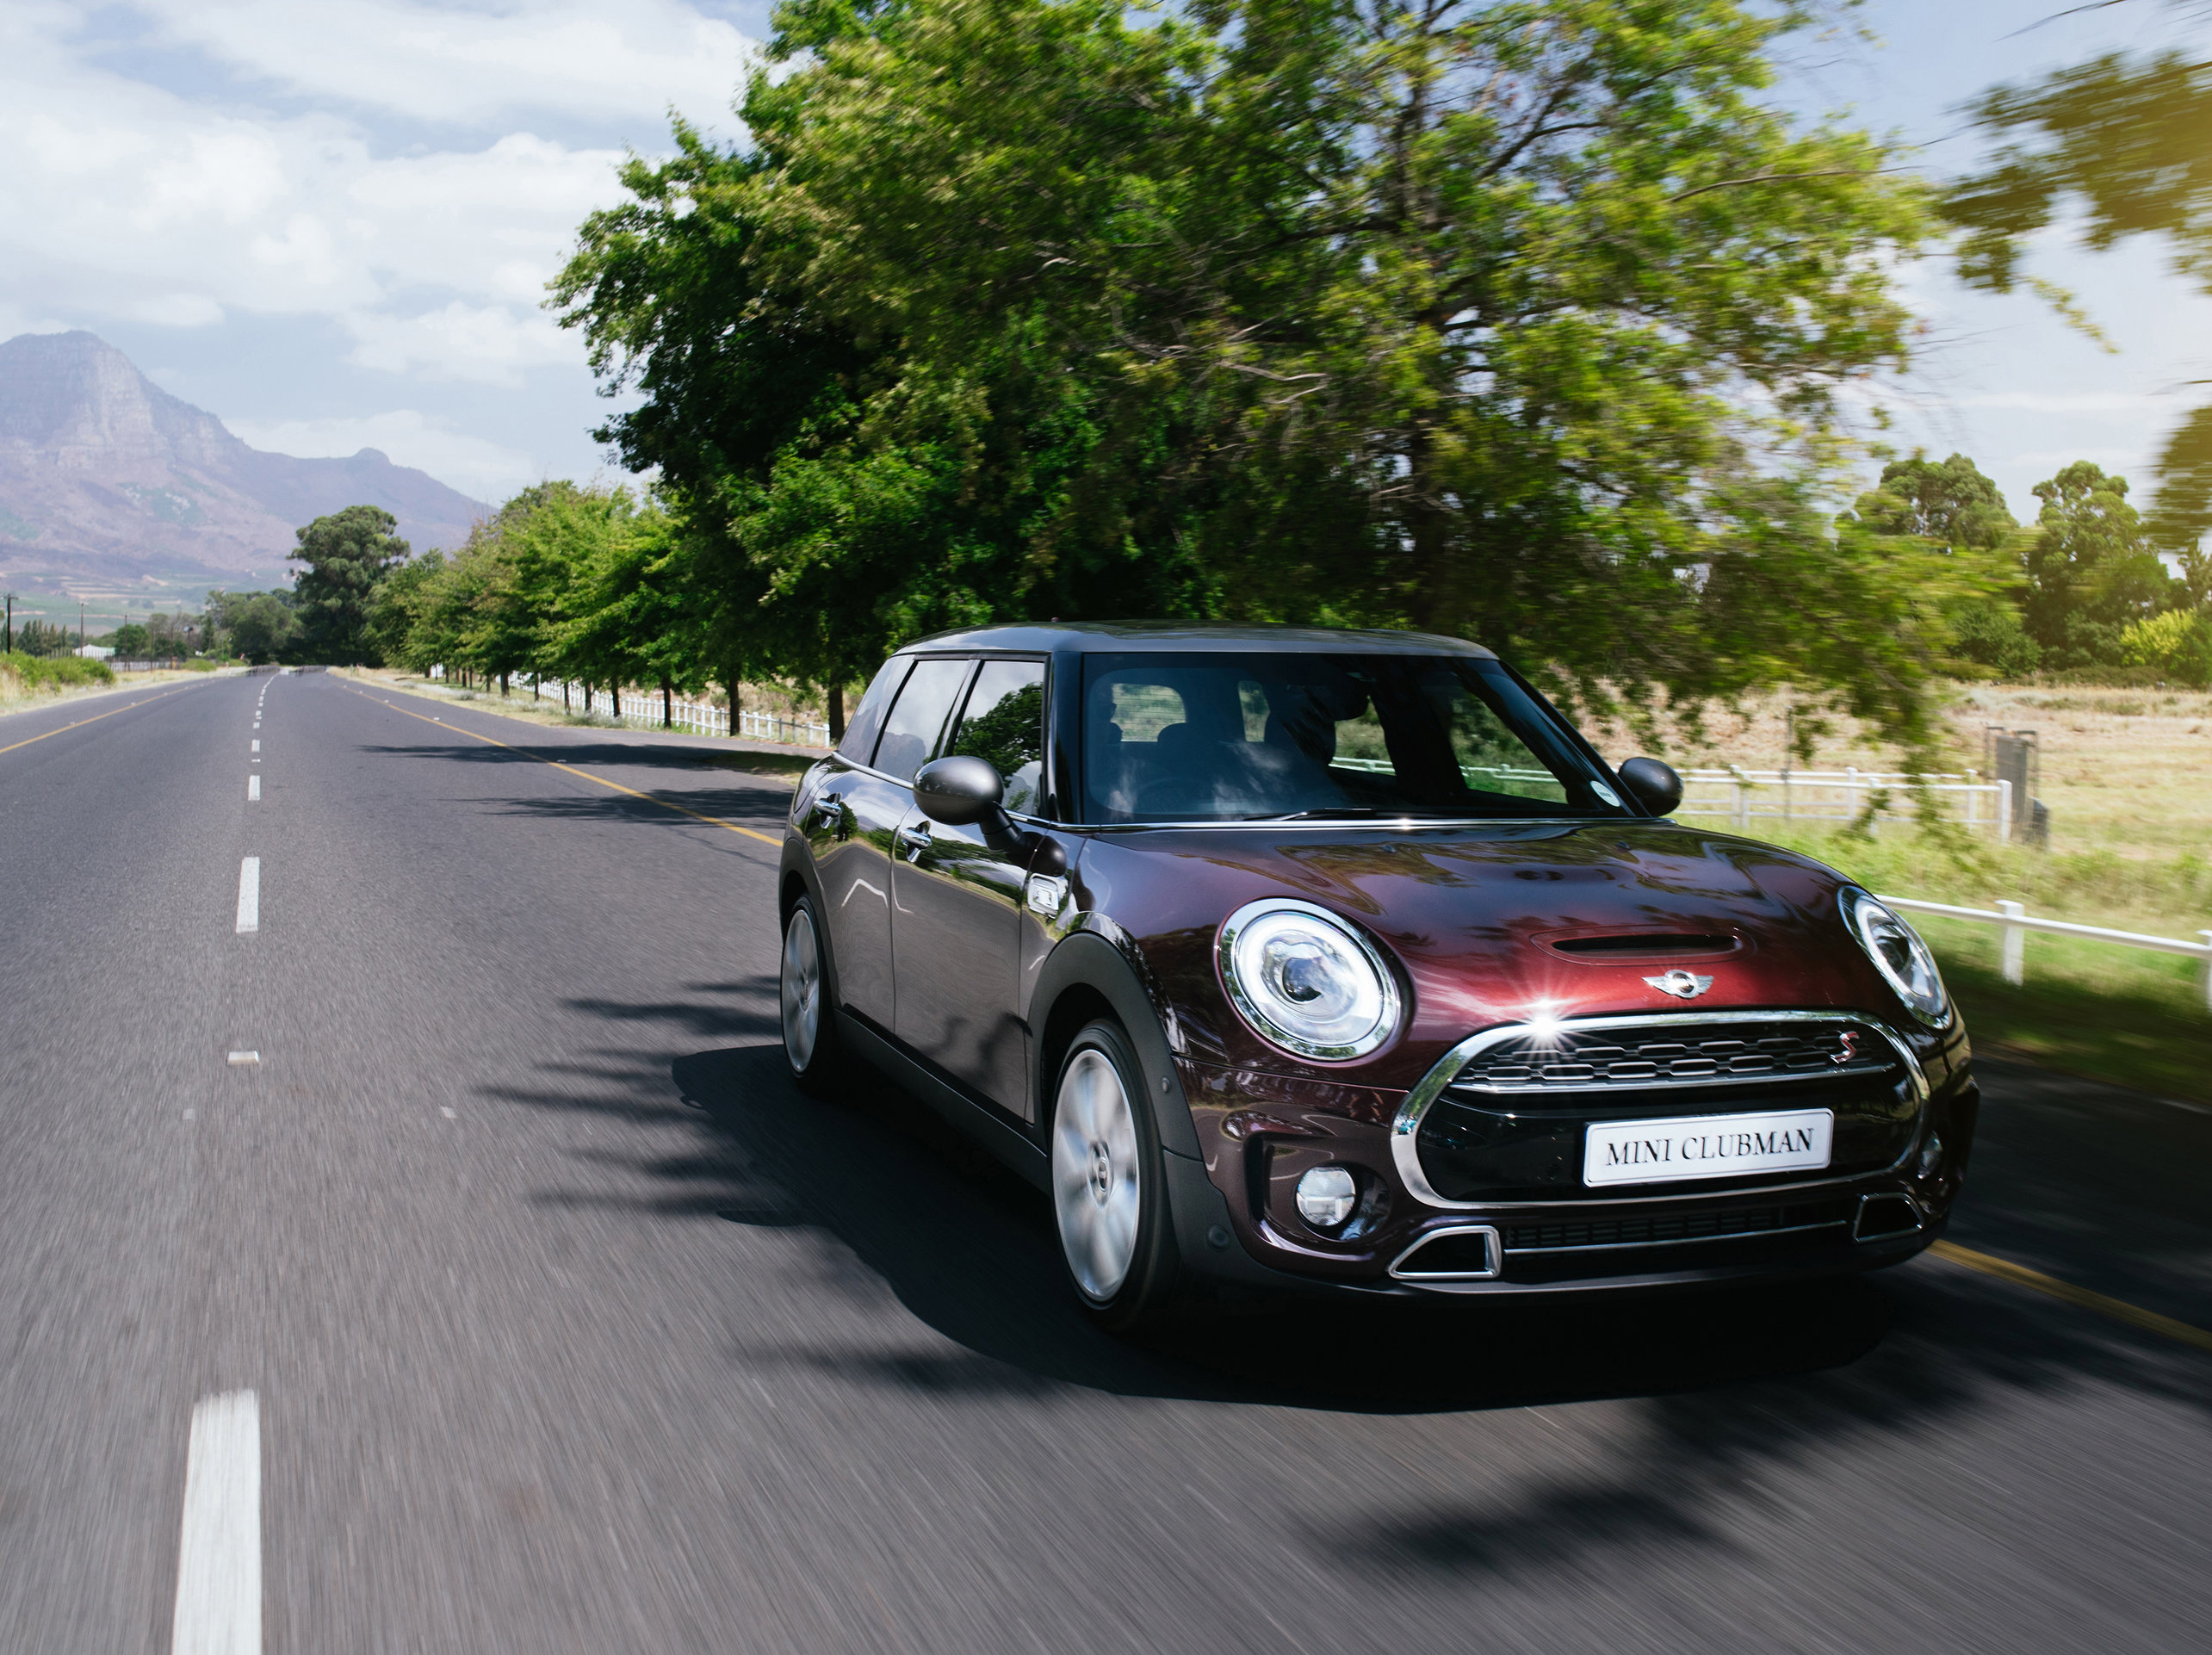 rsz_mini_clubman_dna_photographers_cape_town_001_2